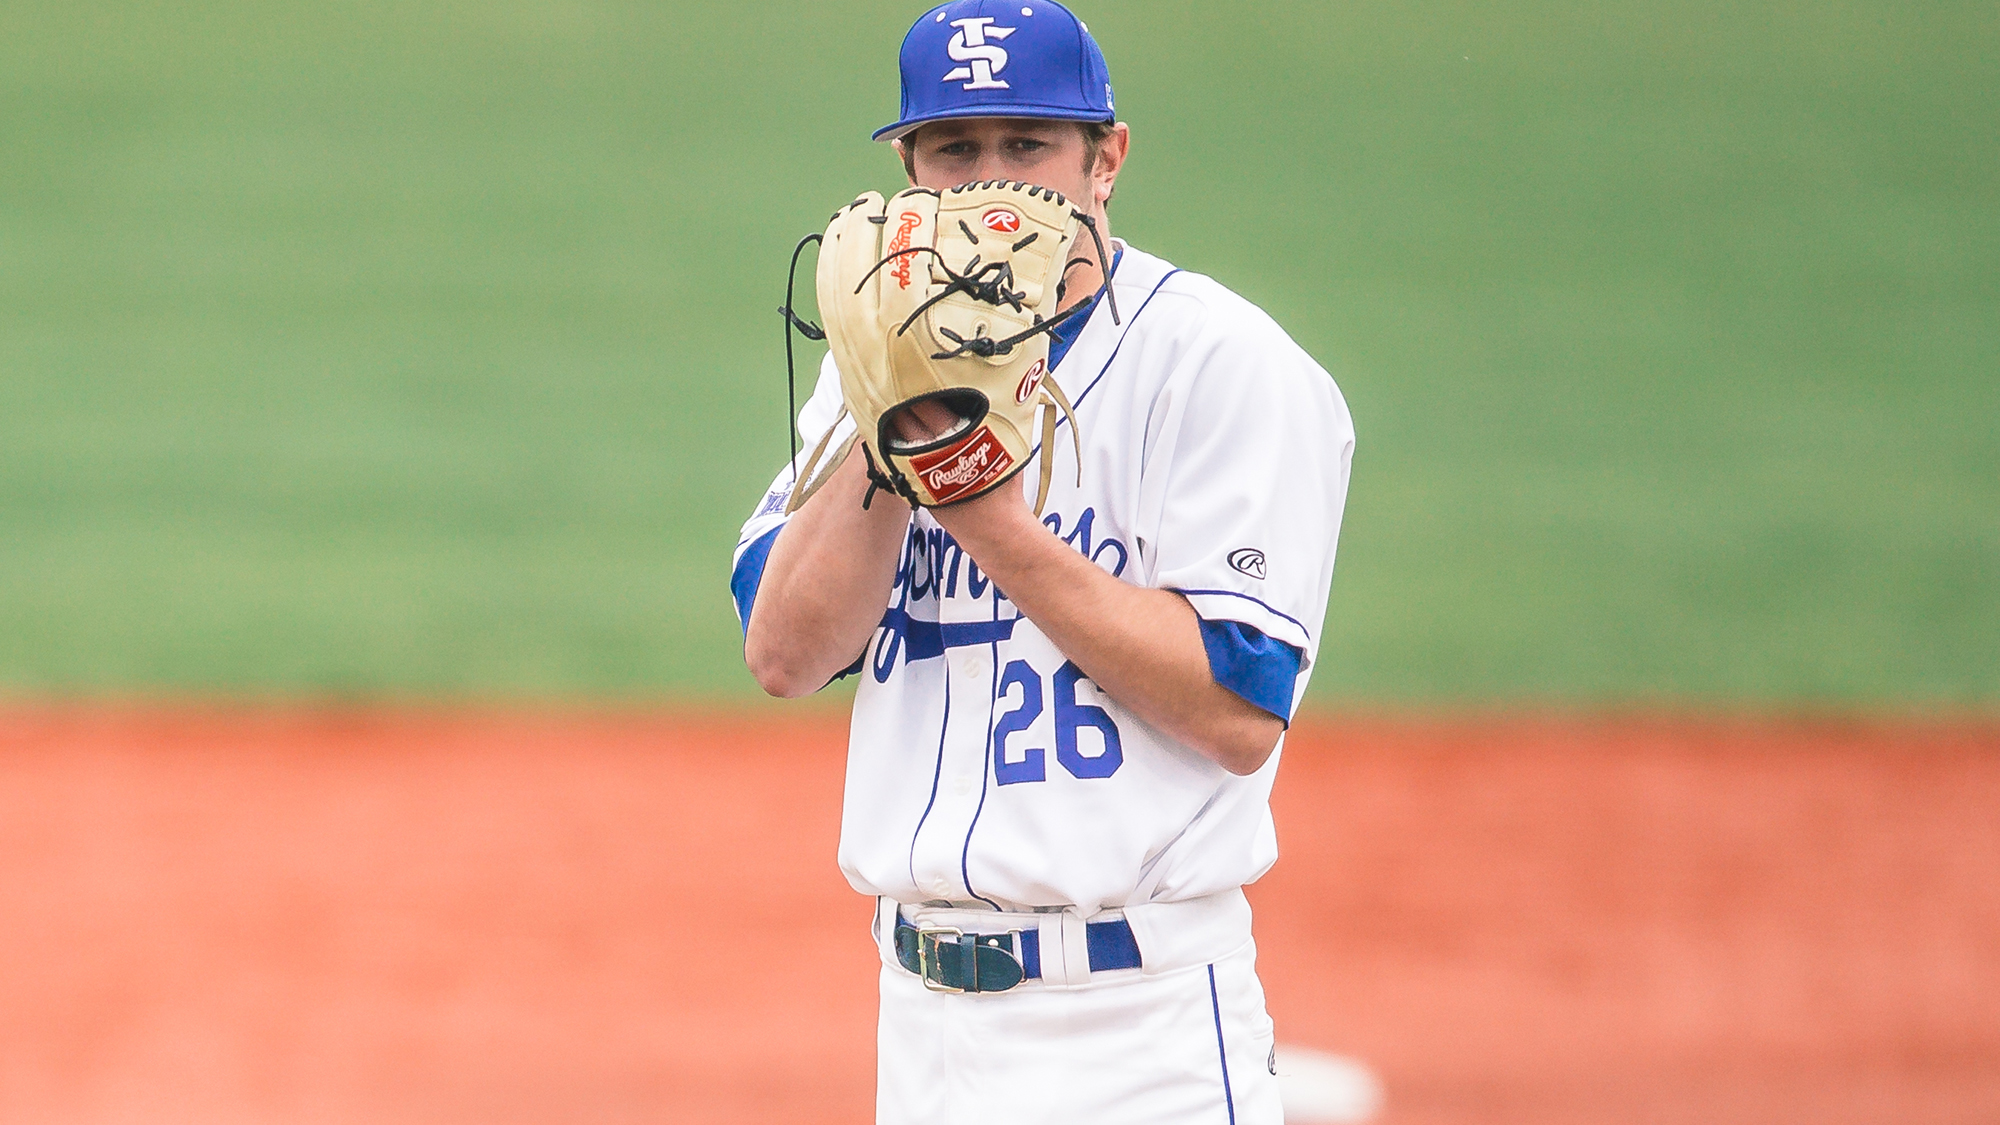 Great Lake Canadians alum Tyler Whitbread (Camlachie, Ont.) struck out six in 5 1/3 innings to help the Indiana State Sycamores to a 10-5 win over the Ohio State Buckeyes and into the Nashville NCAA Regional final against Vanderbilt. Photo: Indiana State Athletics